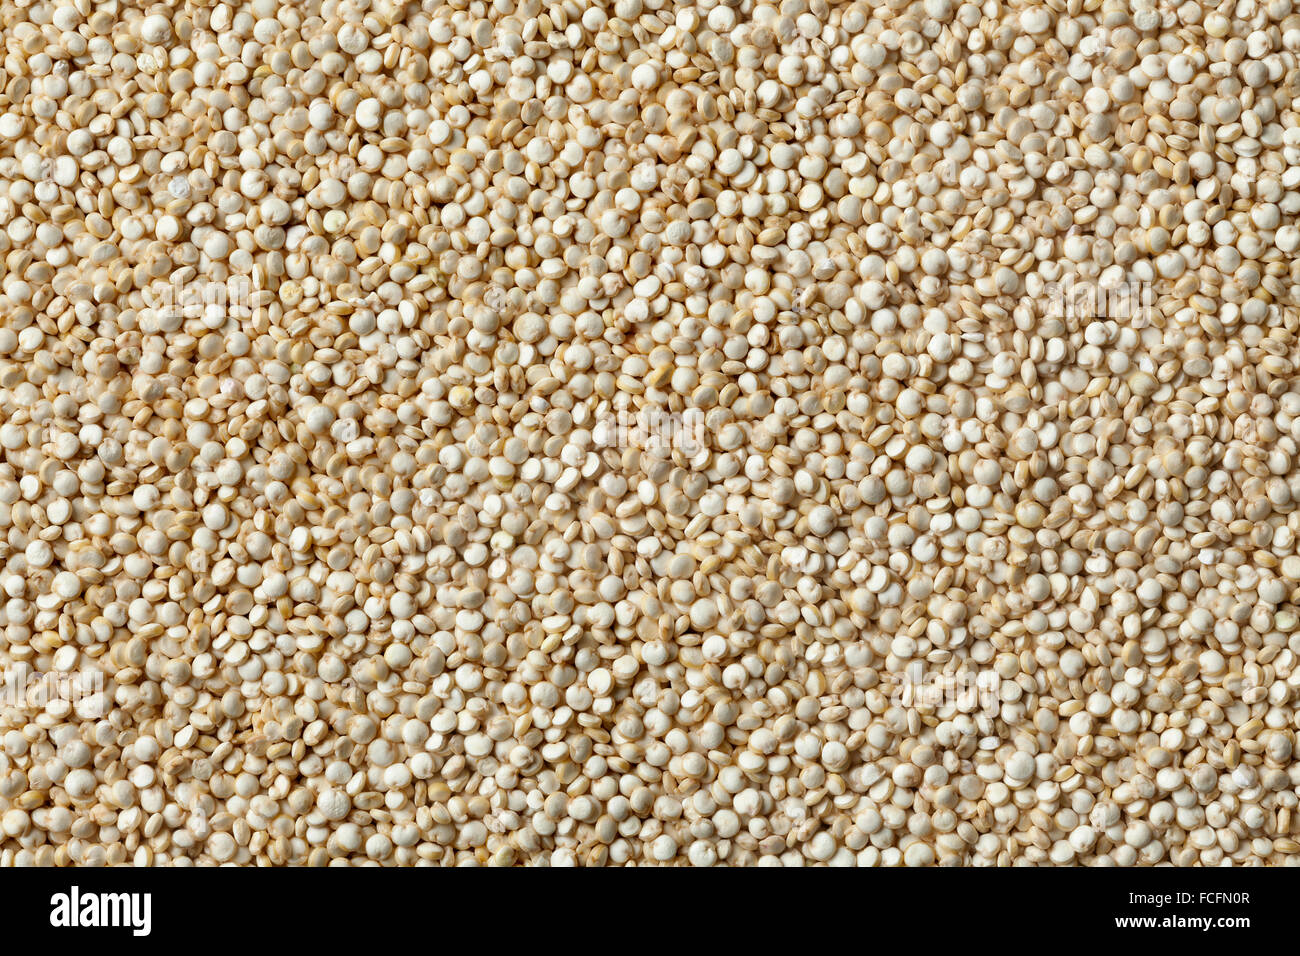 Raw Quinoa seeds full frame - Stock Image